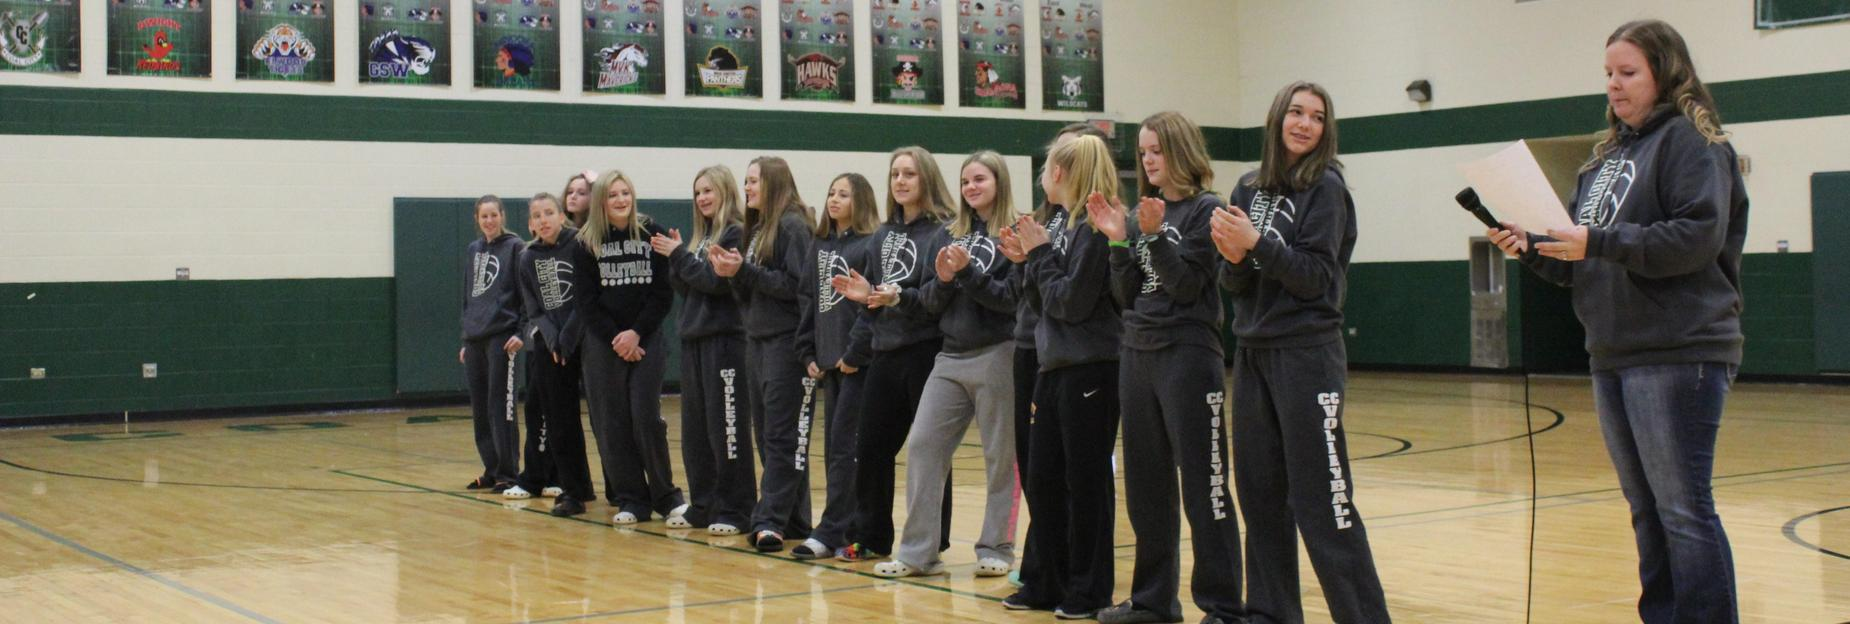 Good luck at state 8th grade volleyball